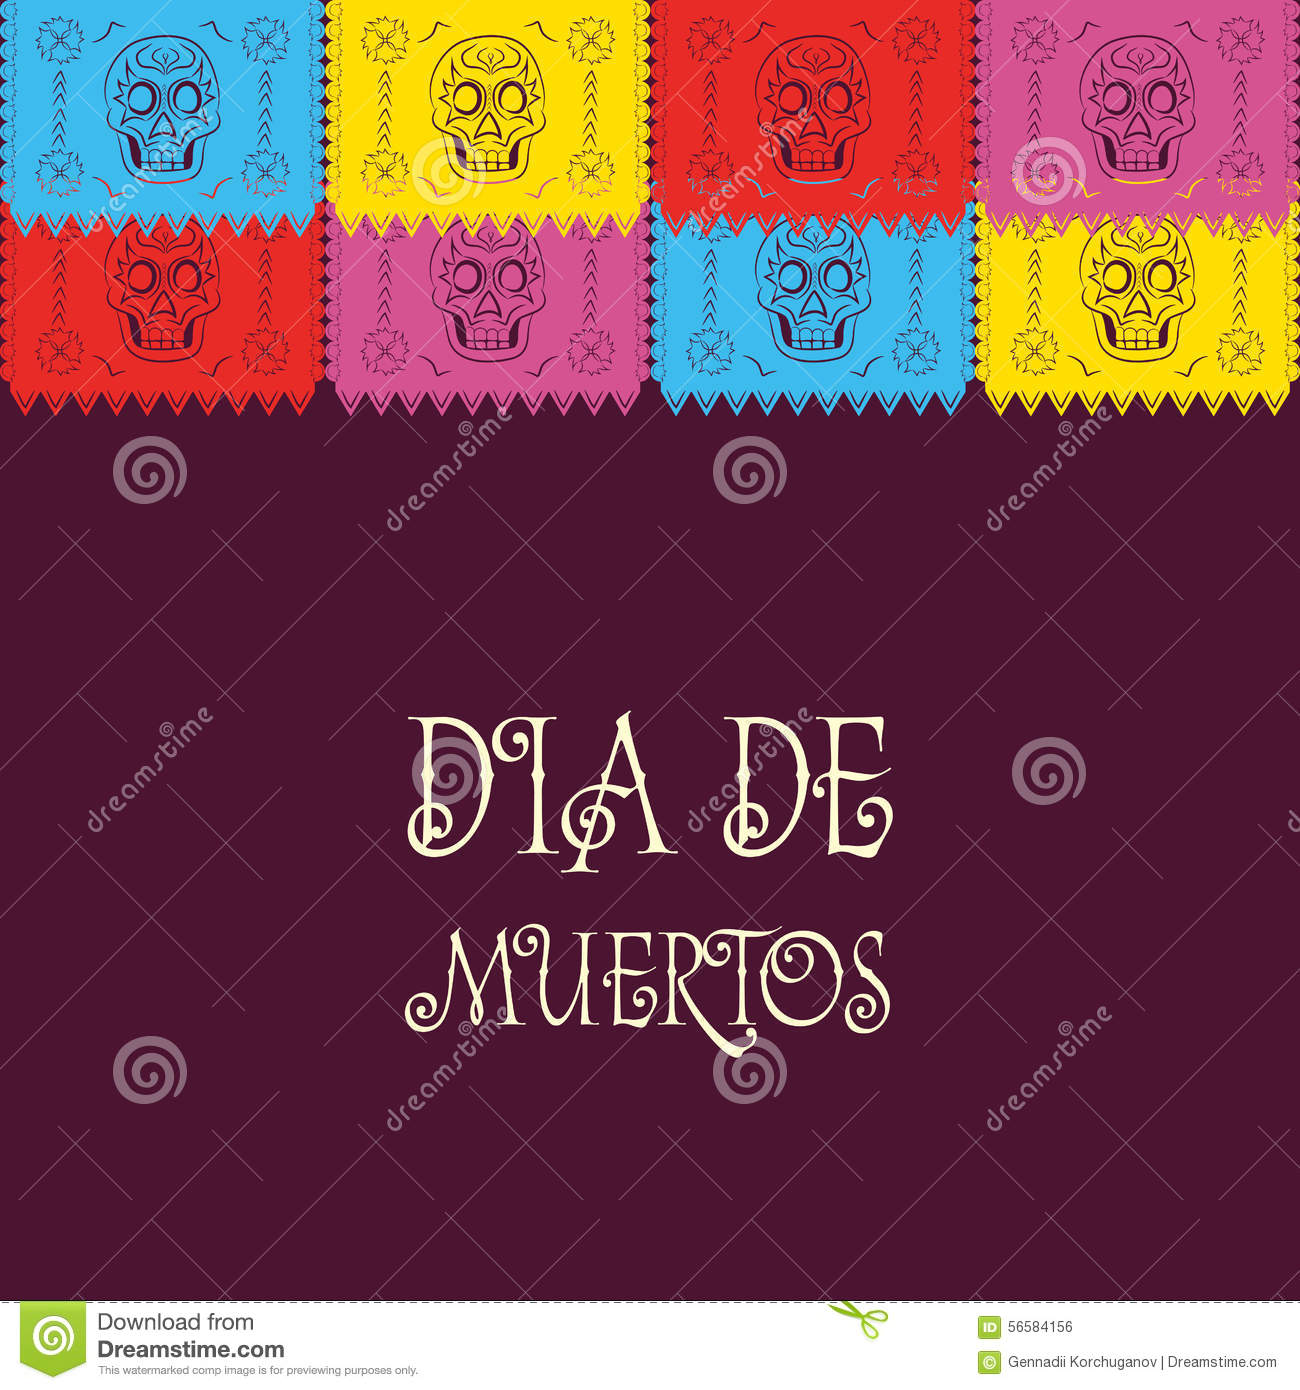 Dia de muertos mexican day of the death spanish text for A text decoration